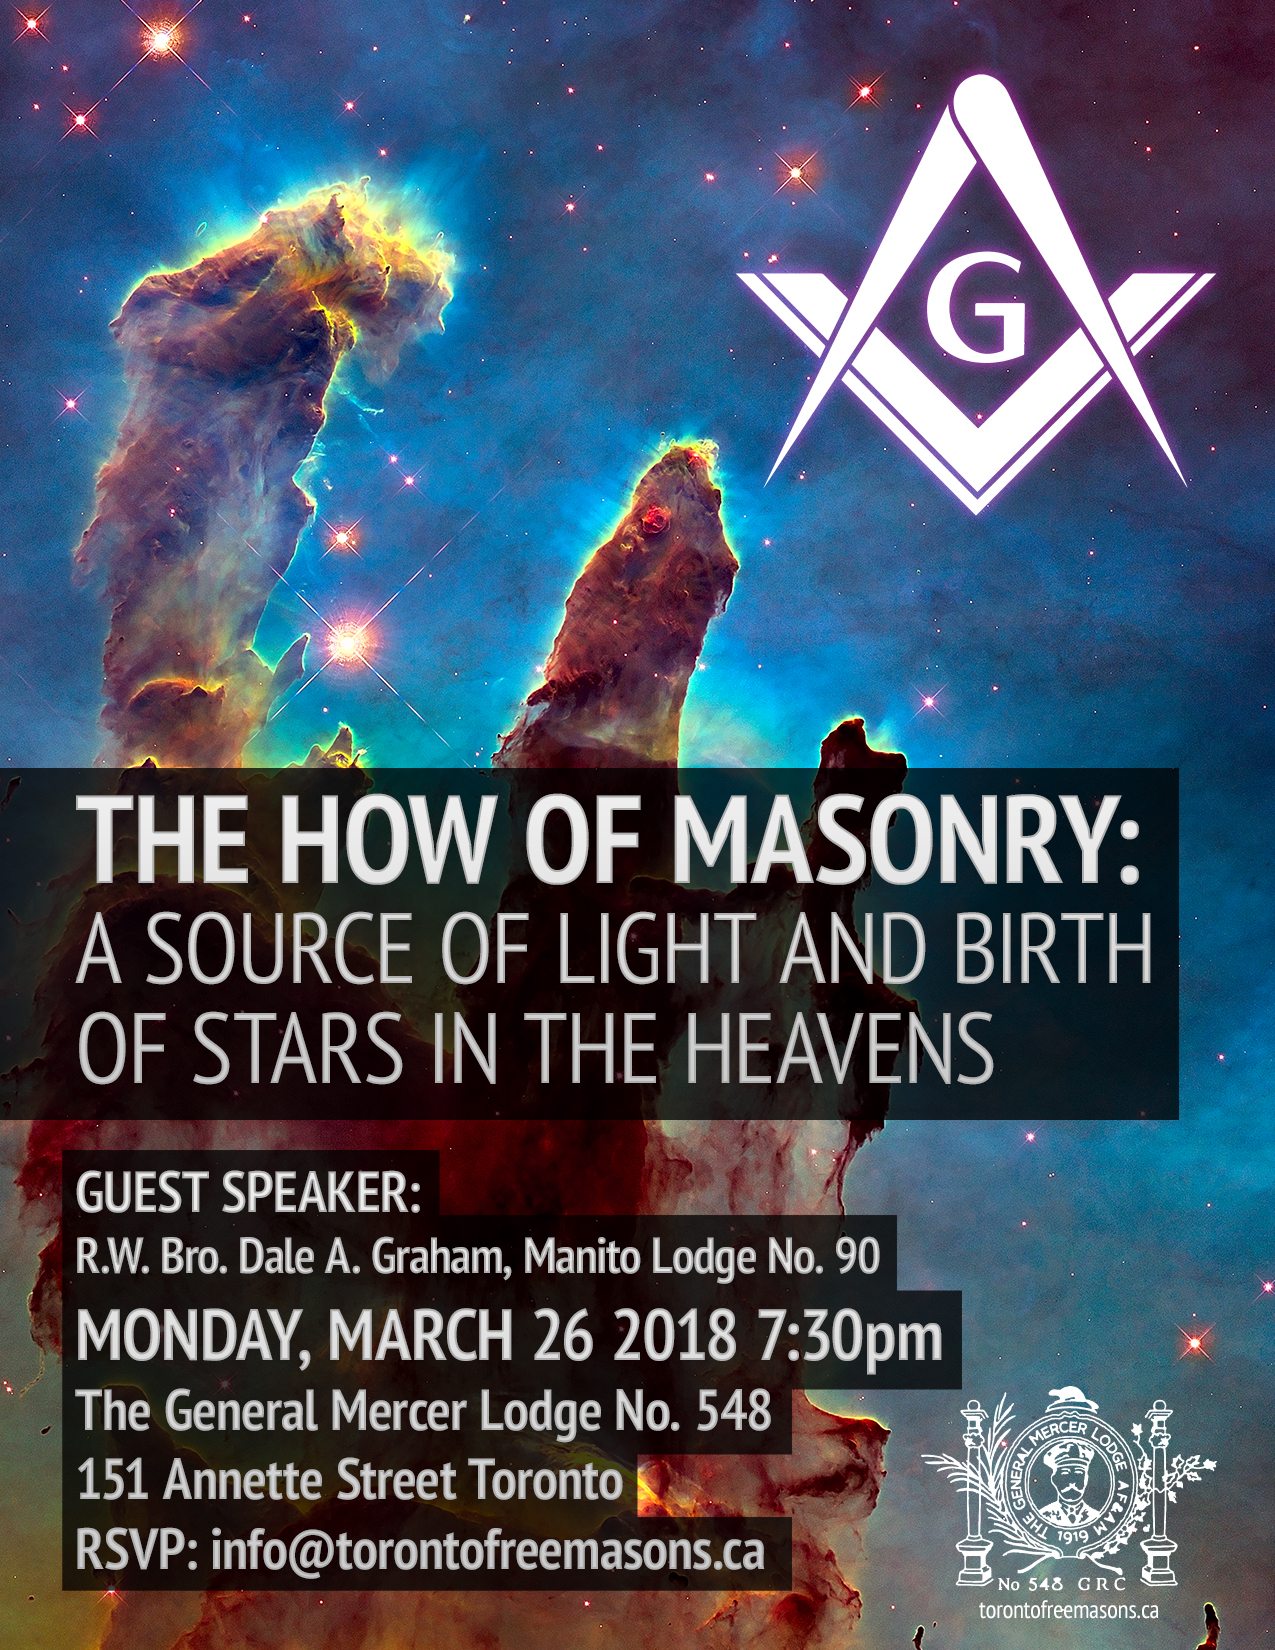 The How of Masonry: A Source of Light and Birth of Stars in the Heavens Guest Speaker: R.W. Bro Dale A. Graham, Manito Lodge No. 90 Monday March 26, 2018 7:30pm The General Mercer Lodge No. 548 151 Annette Street, Toronto RSVP: info@torontofreemasons.ca